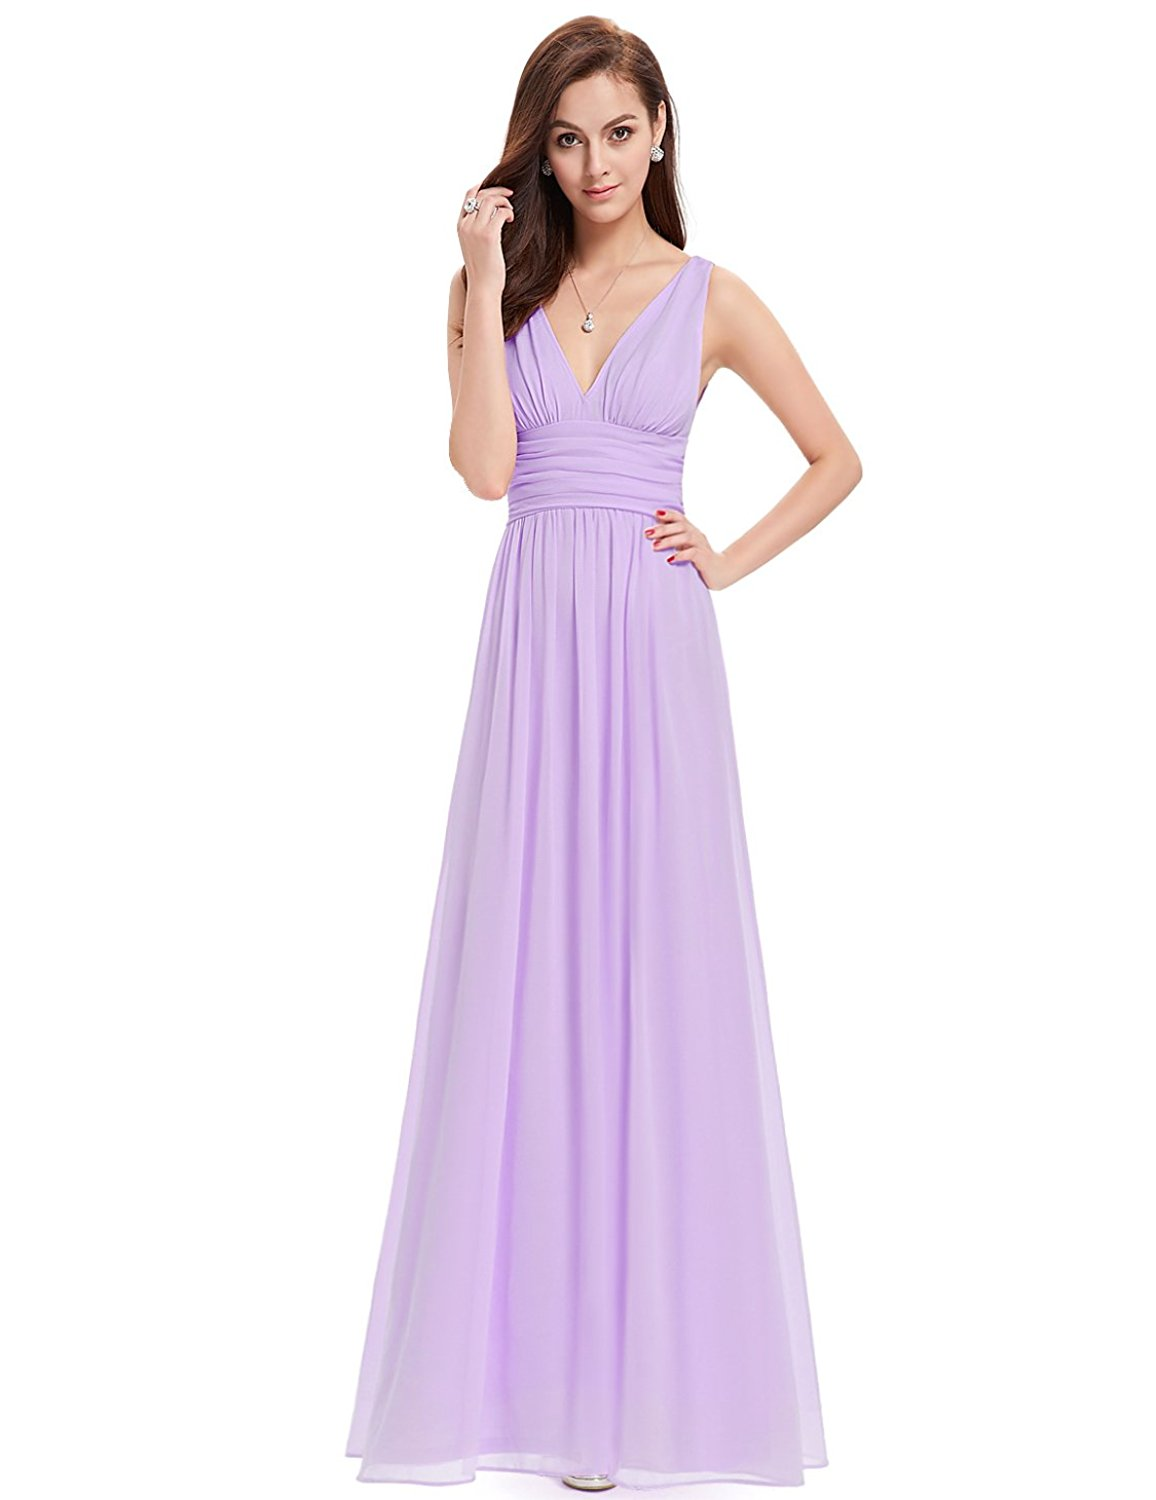 Ever Pretty Womens Double V Neck Sleeveless Chiffon Bridesmaids Dress 6 US Light Purple at Amazon Women's Clothing store